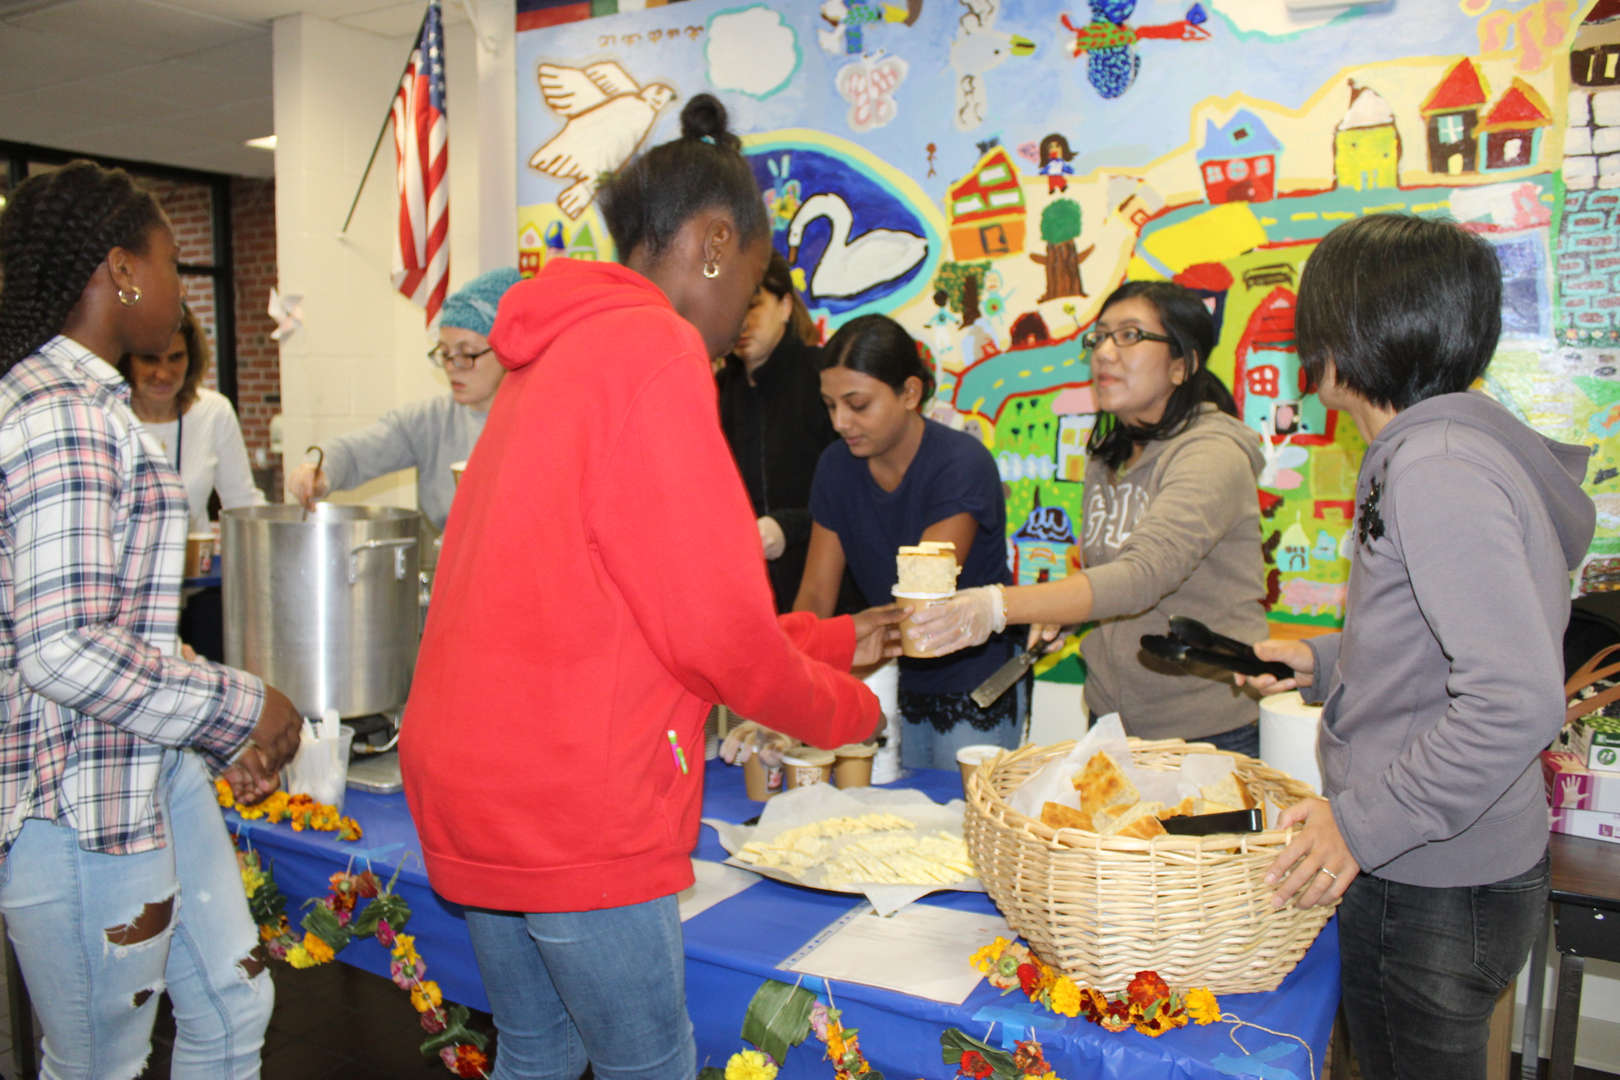 Parents serve soup to children in the school cafeteria.